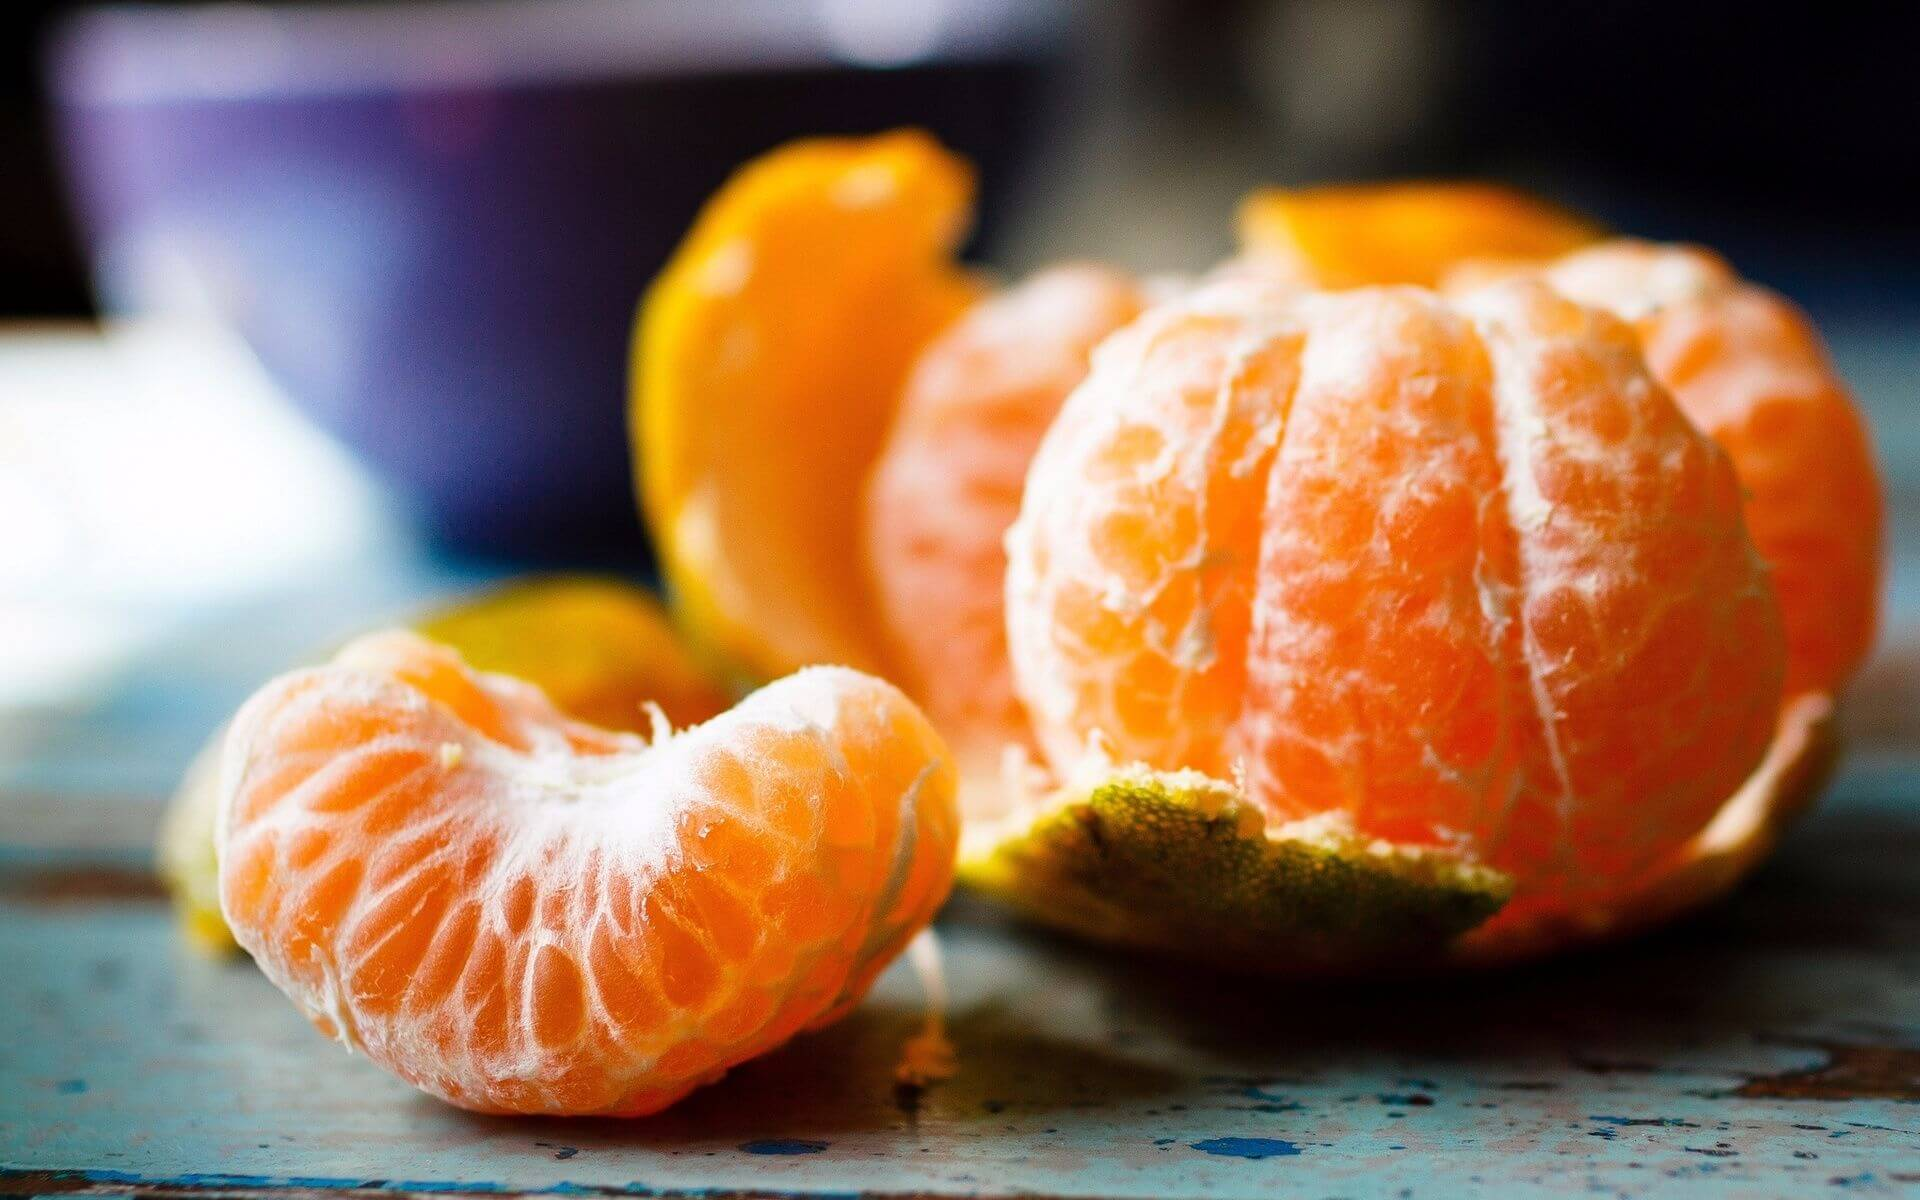 How to wash tangerine with white clothes